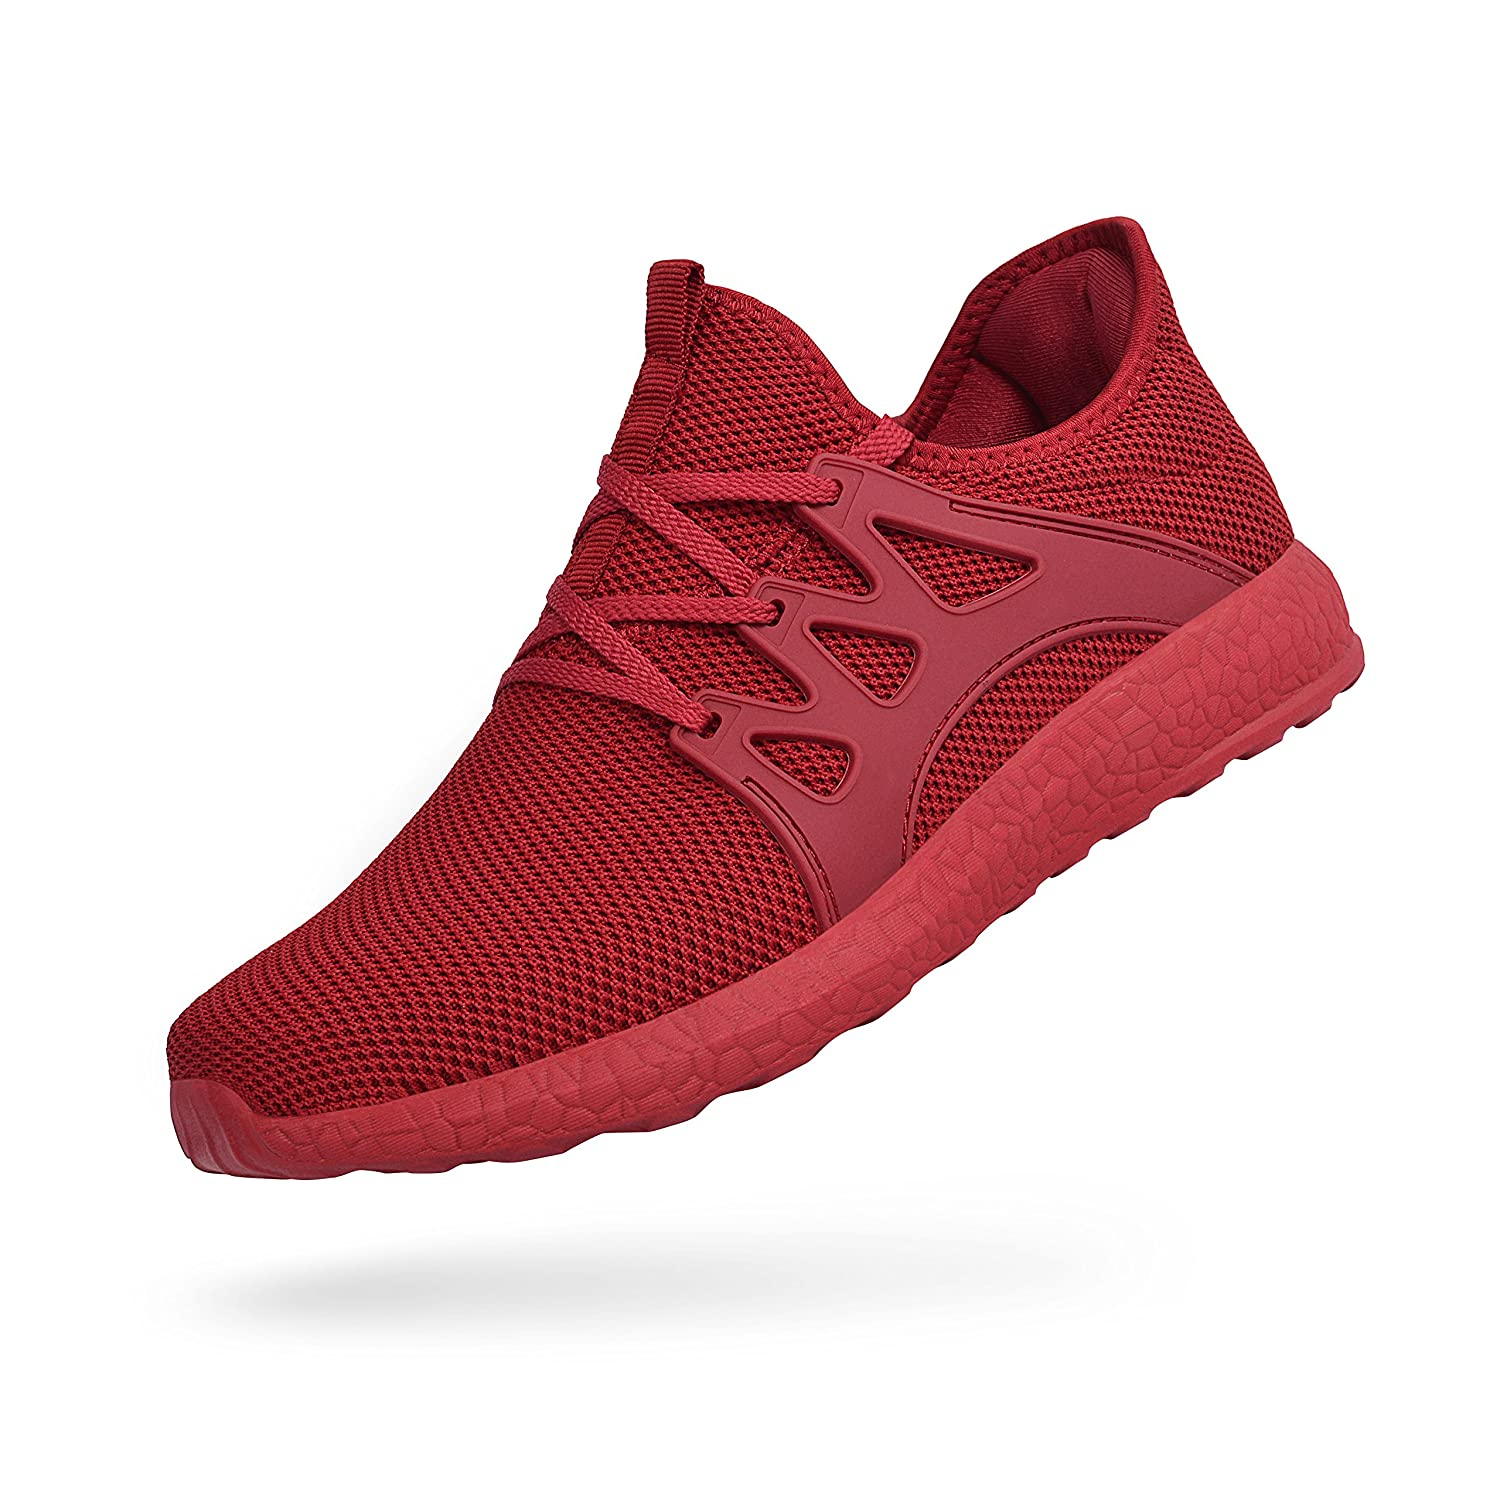 Troadlop Mens Breathable Sneakers Running Shoes Mesh Lightweight Fashion Gym Outdoor Walking Athletic B07BT9K8TP 12 M US|Red